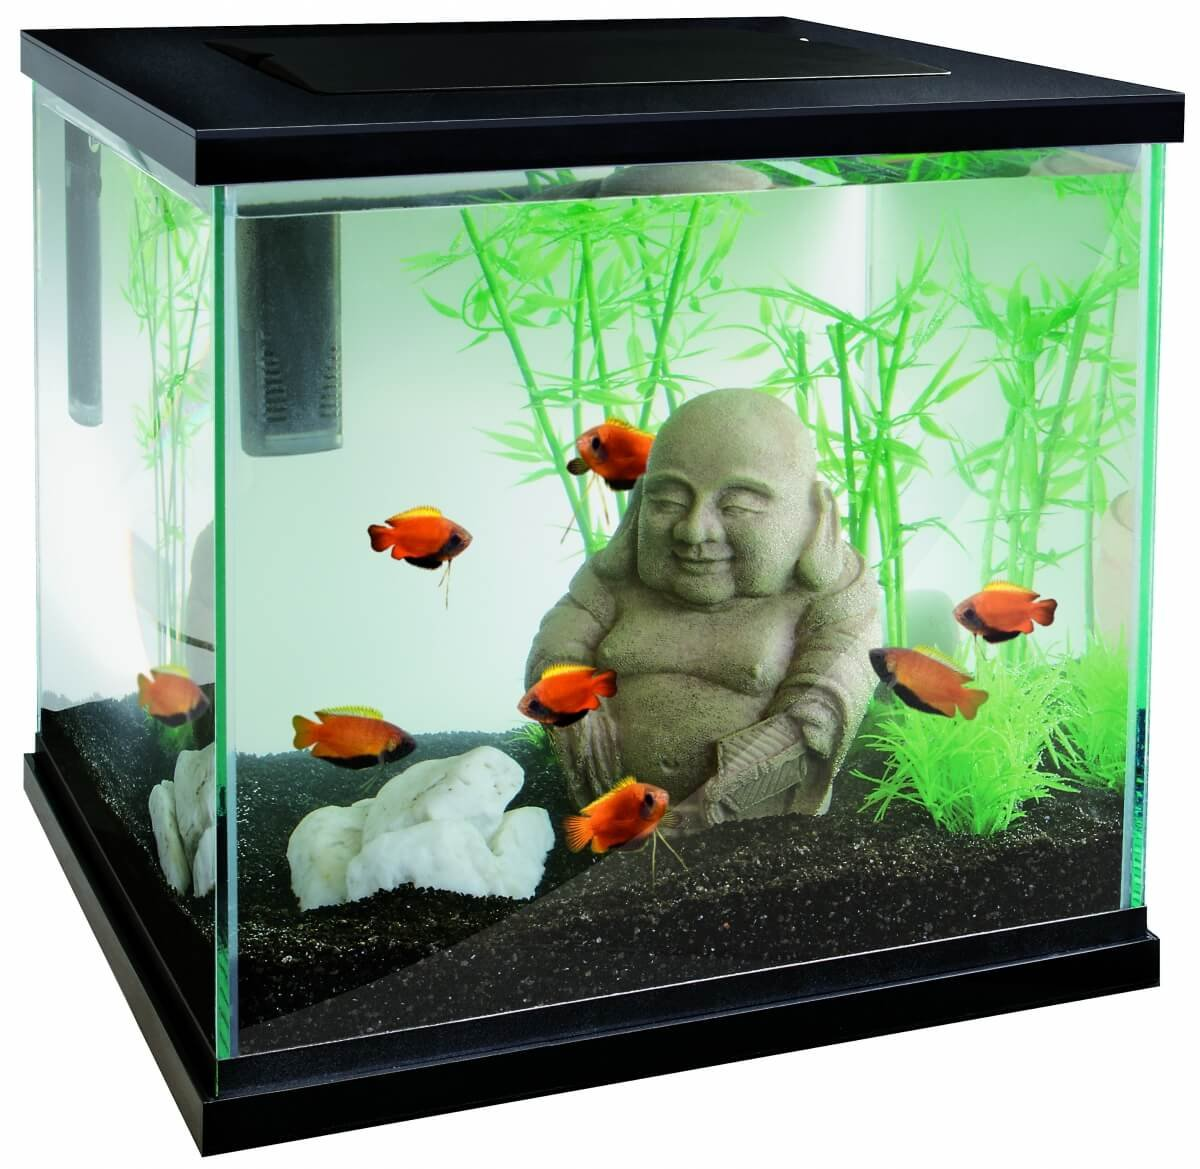 Aquarium zen 30 Superfish - blanc ou noir_1